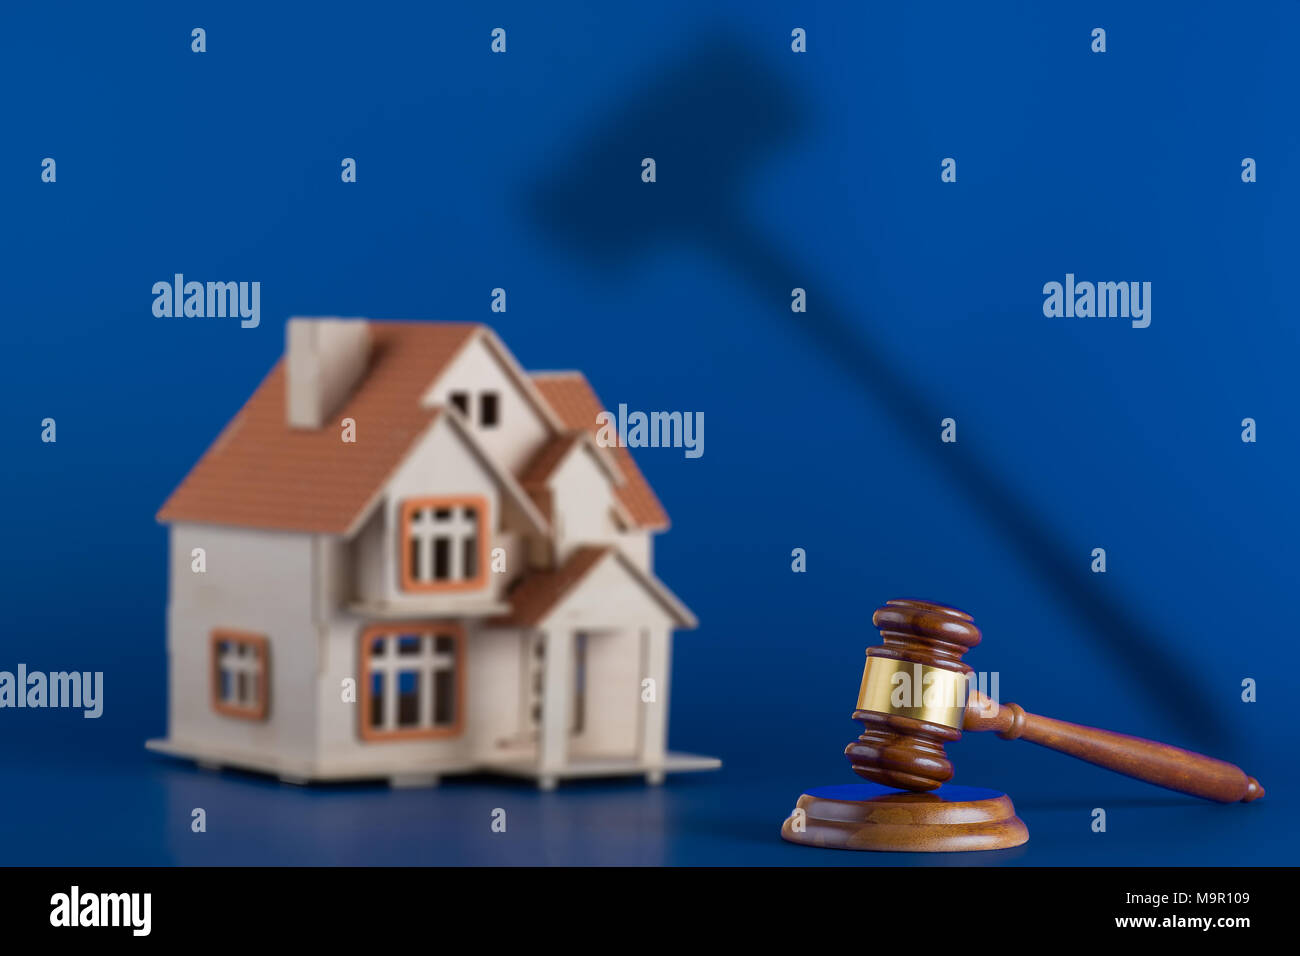 Gavel and model house on blue background. The gavel casts an ominous shadow over the house. Concept for house auction or real estate law Stock Photo